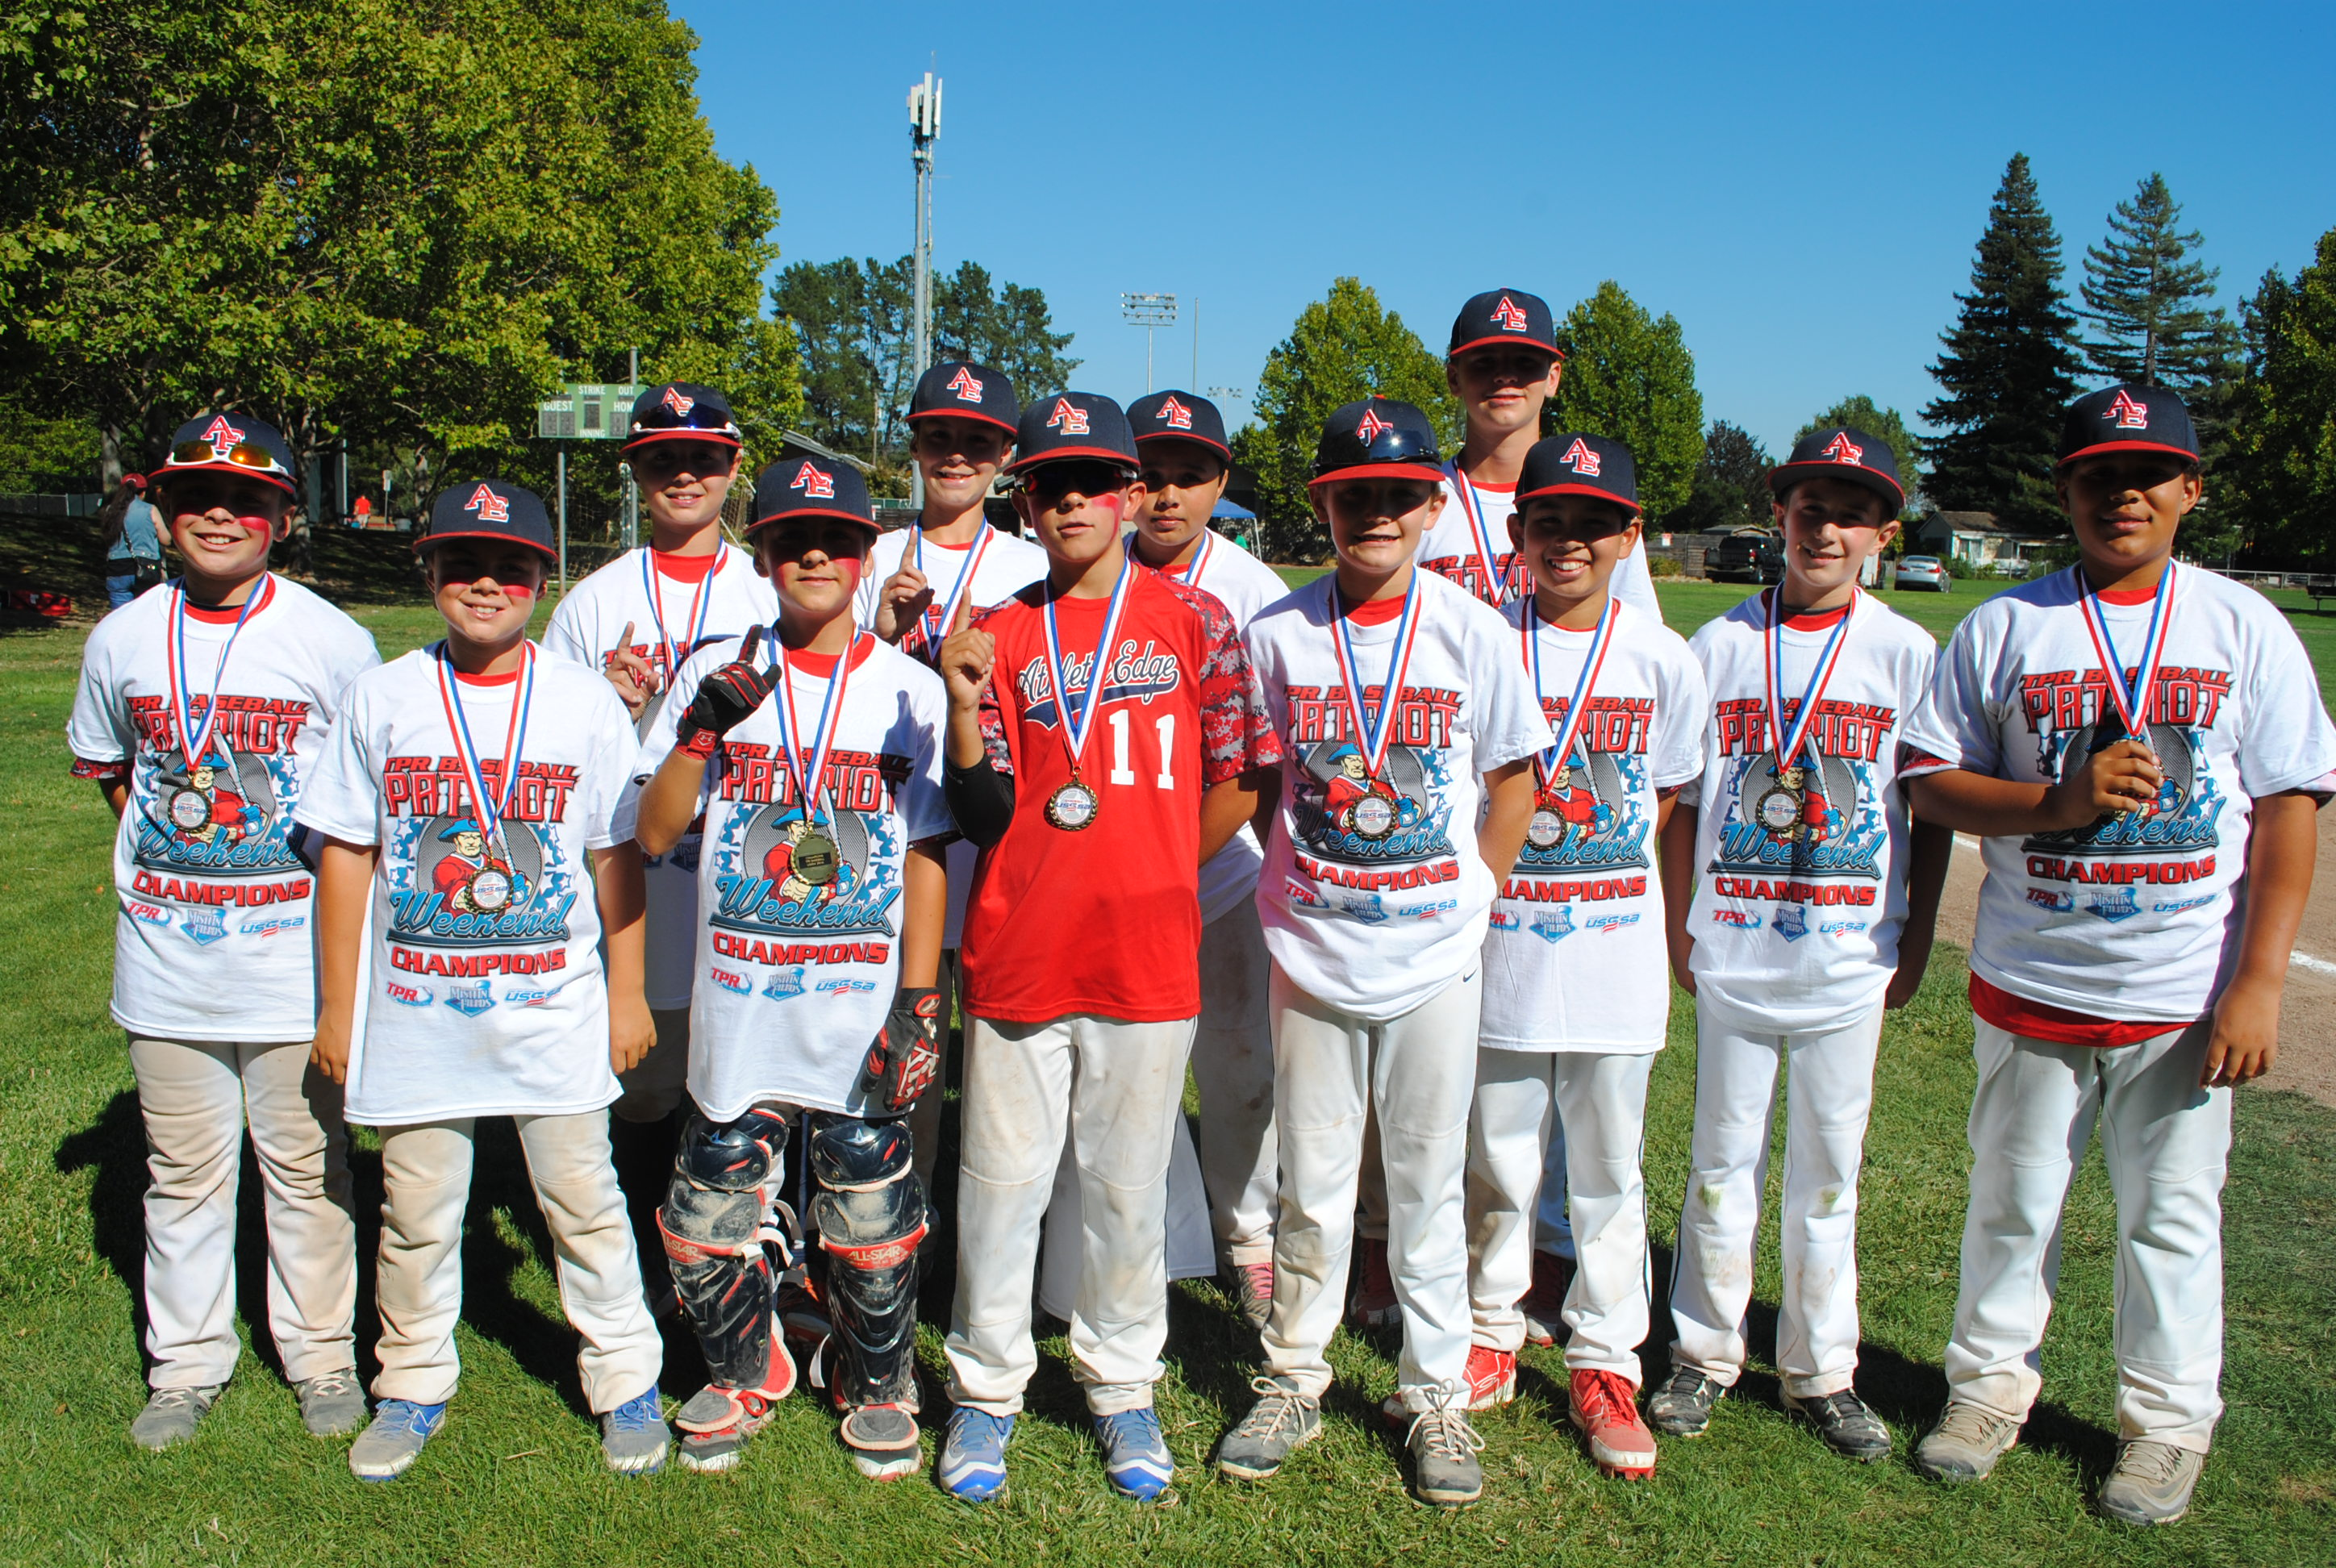 ae12u-game-1-vs-sonoma-stack-win-5-1-gm-2-champs-vs-benicia-17-9-185